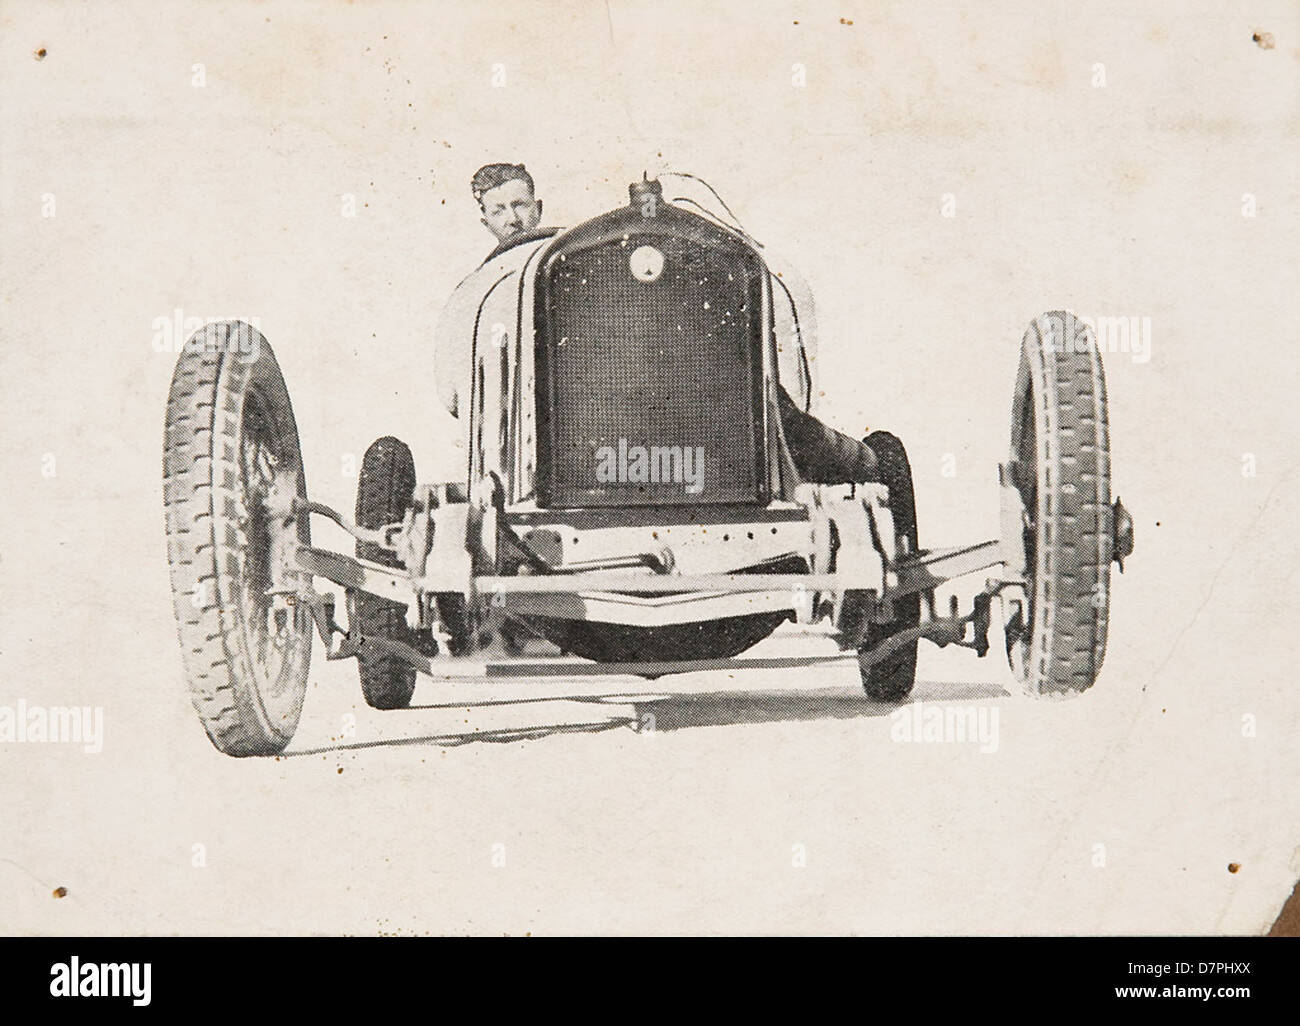 D.J. Harkness at the wheel of an Overland Sports car, 1920 - 1929 - Stock Image